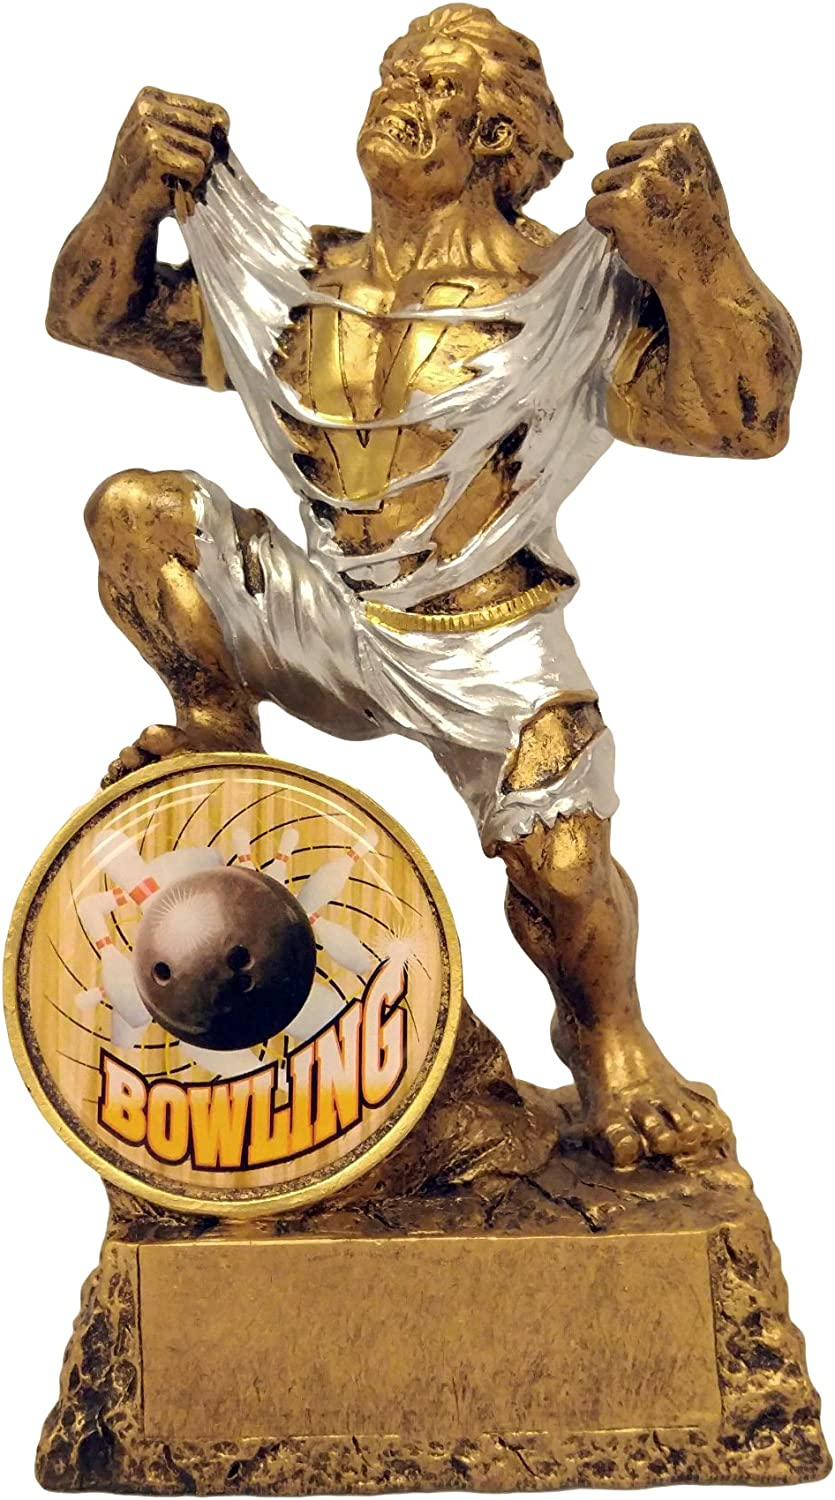 Decade Awards Bowling Monster Trophy - Triumphant Beast Bowler Award - 6.75 Inch Tall - Engraved Plate on Request